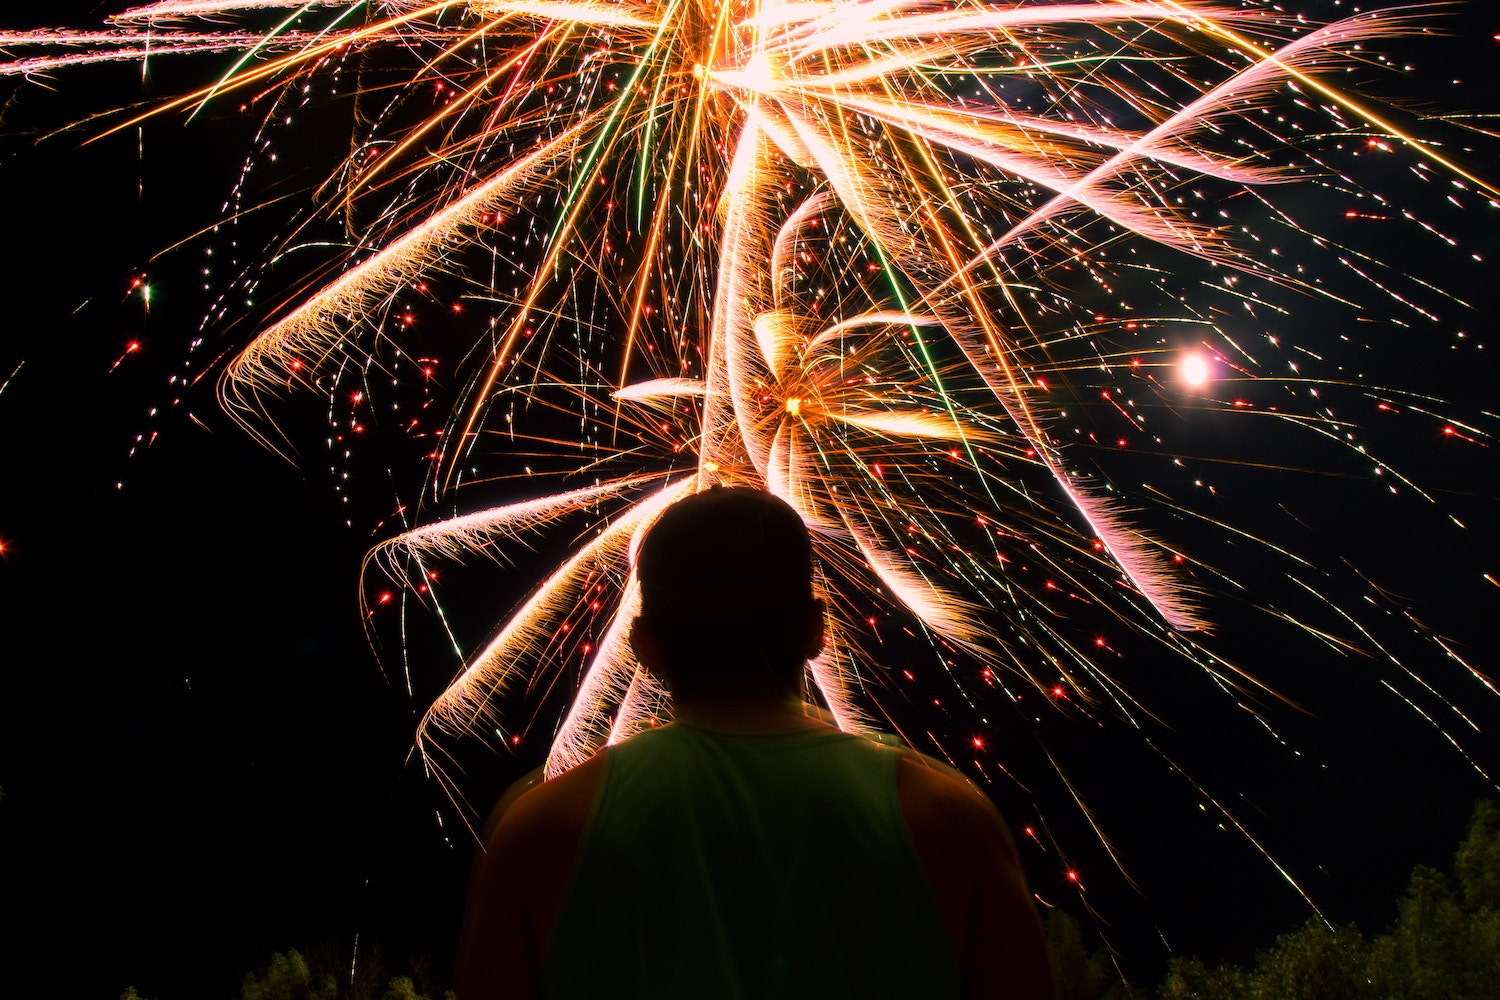 zoomed in fireworks photography